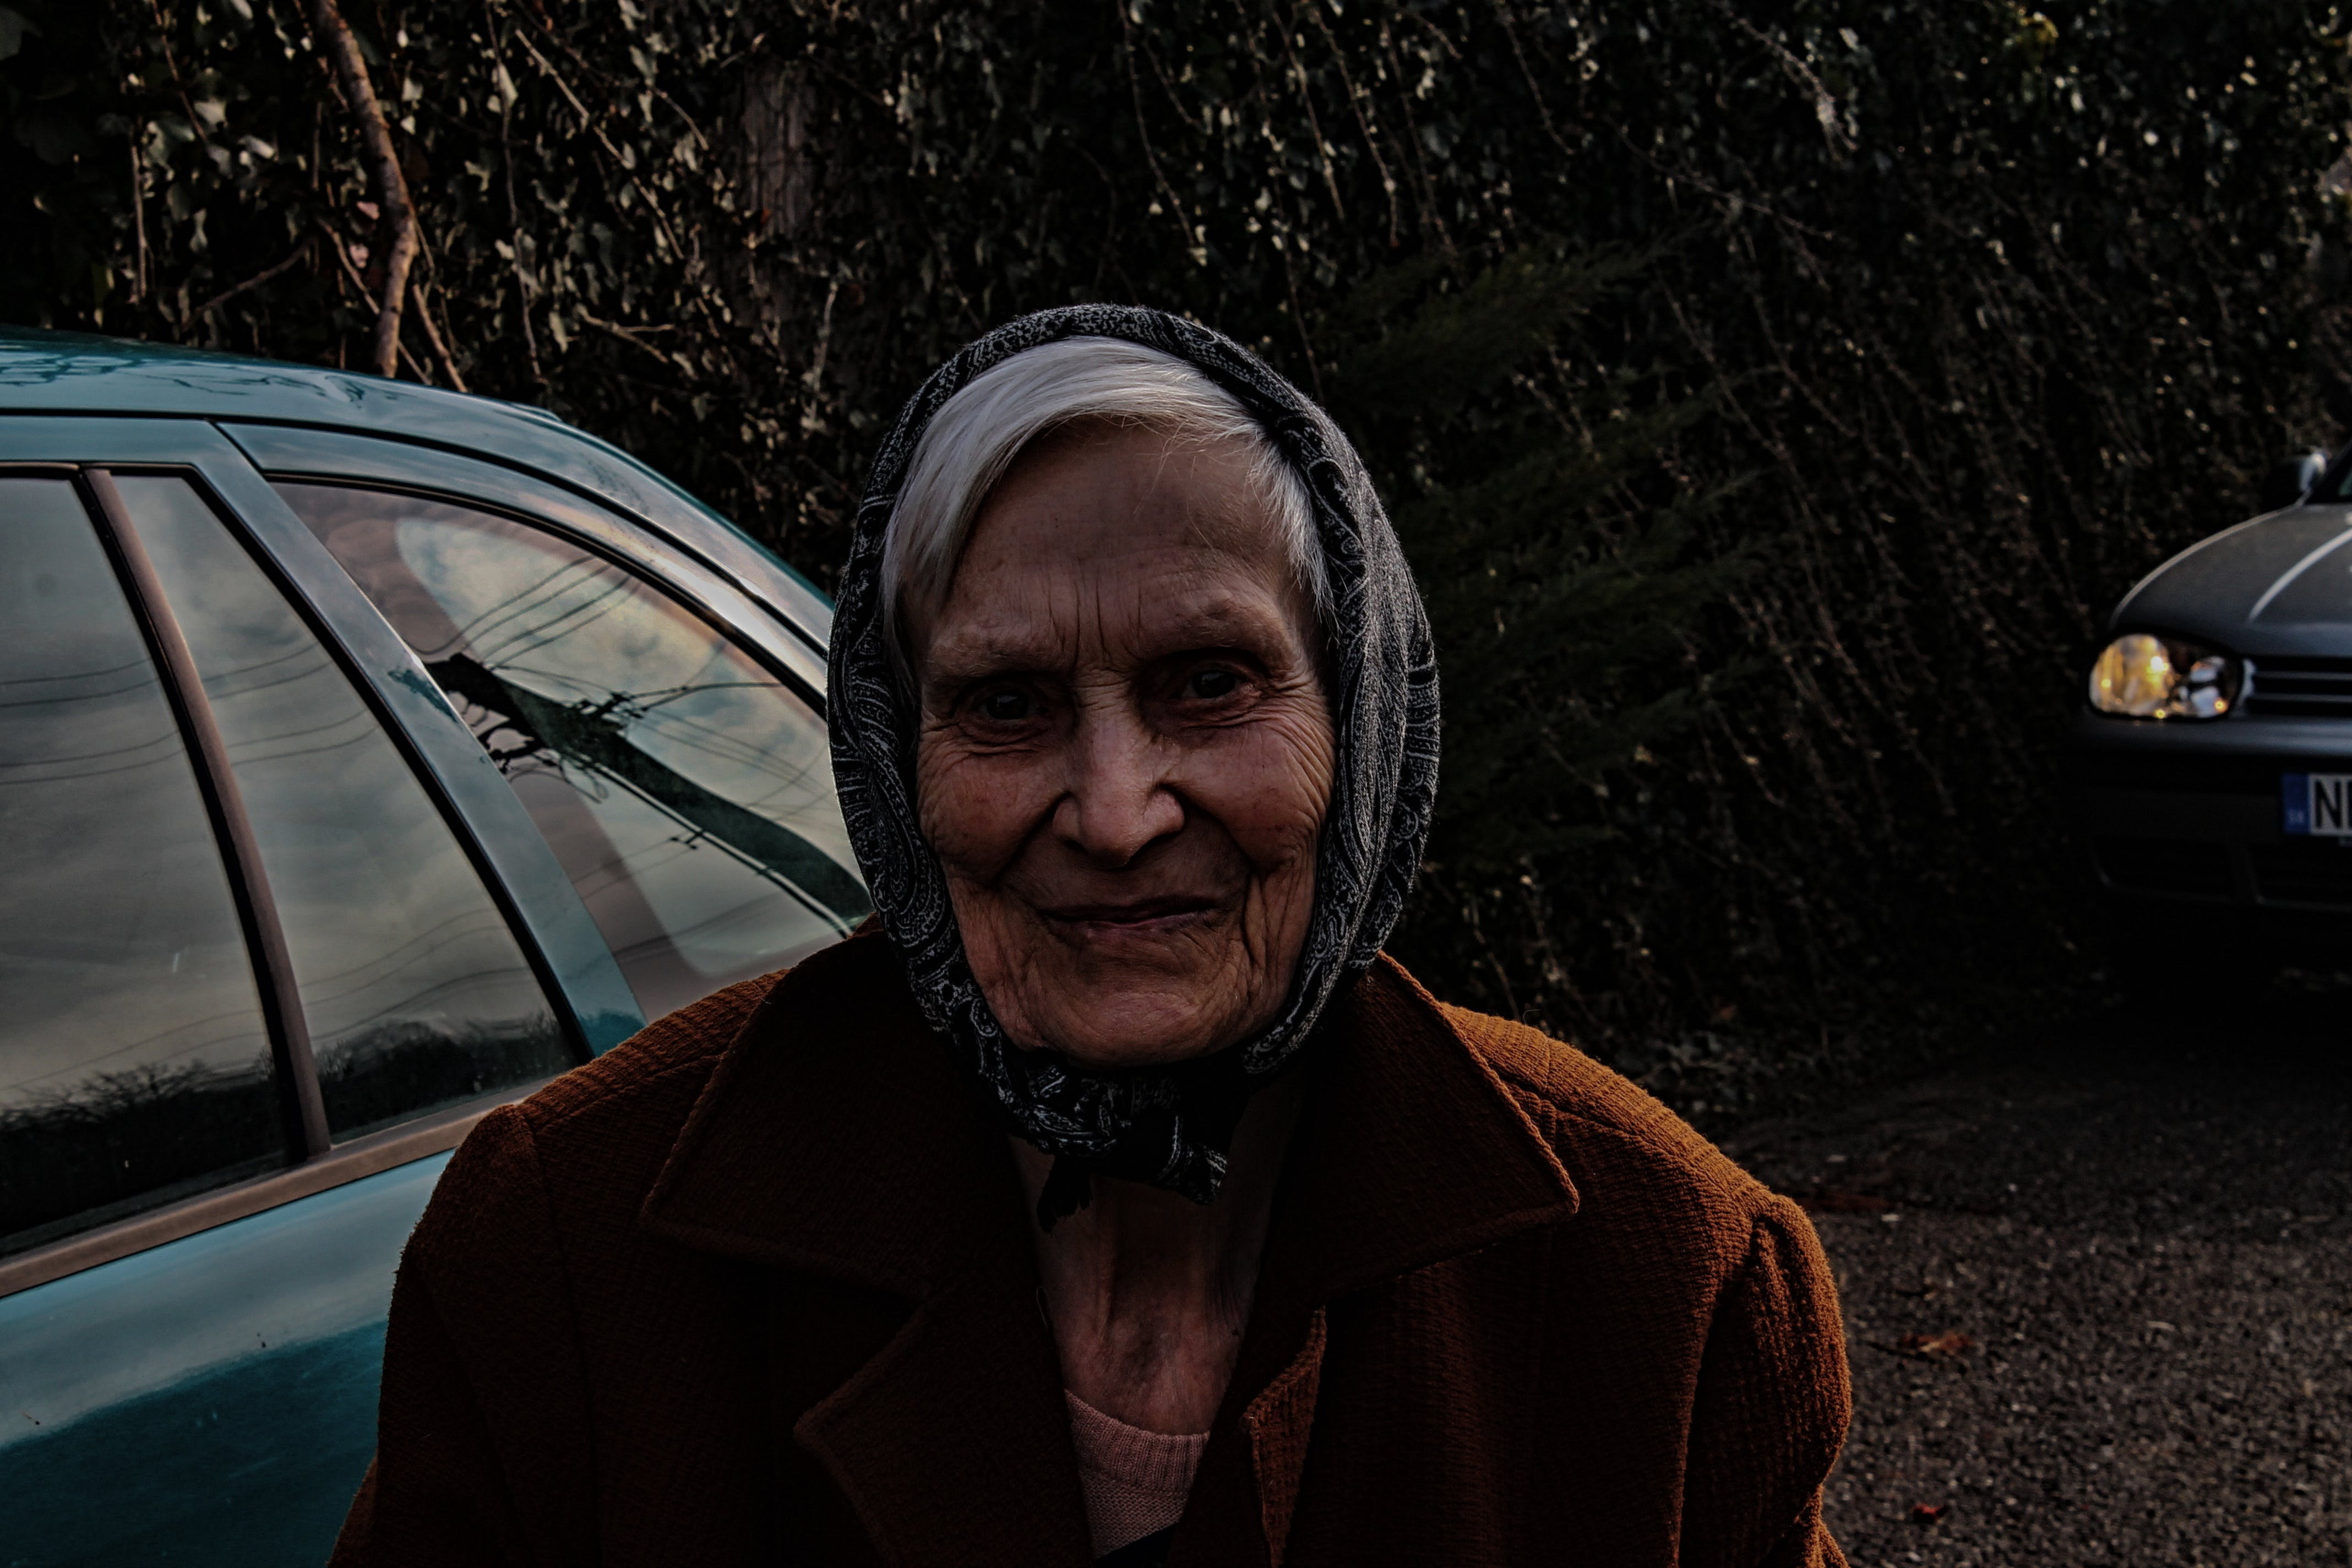 Woman Wearing Brown Jacket and Black Head Scarf